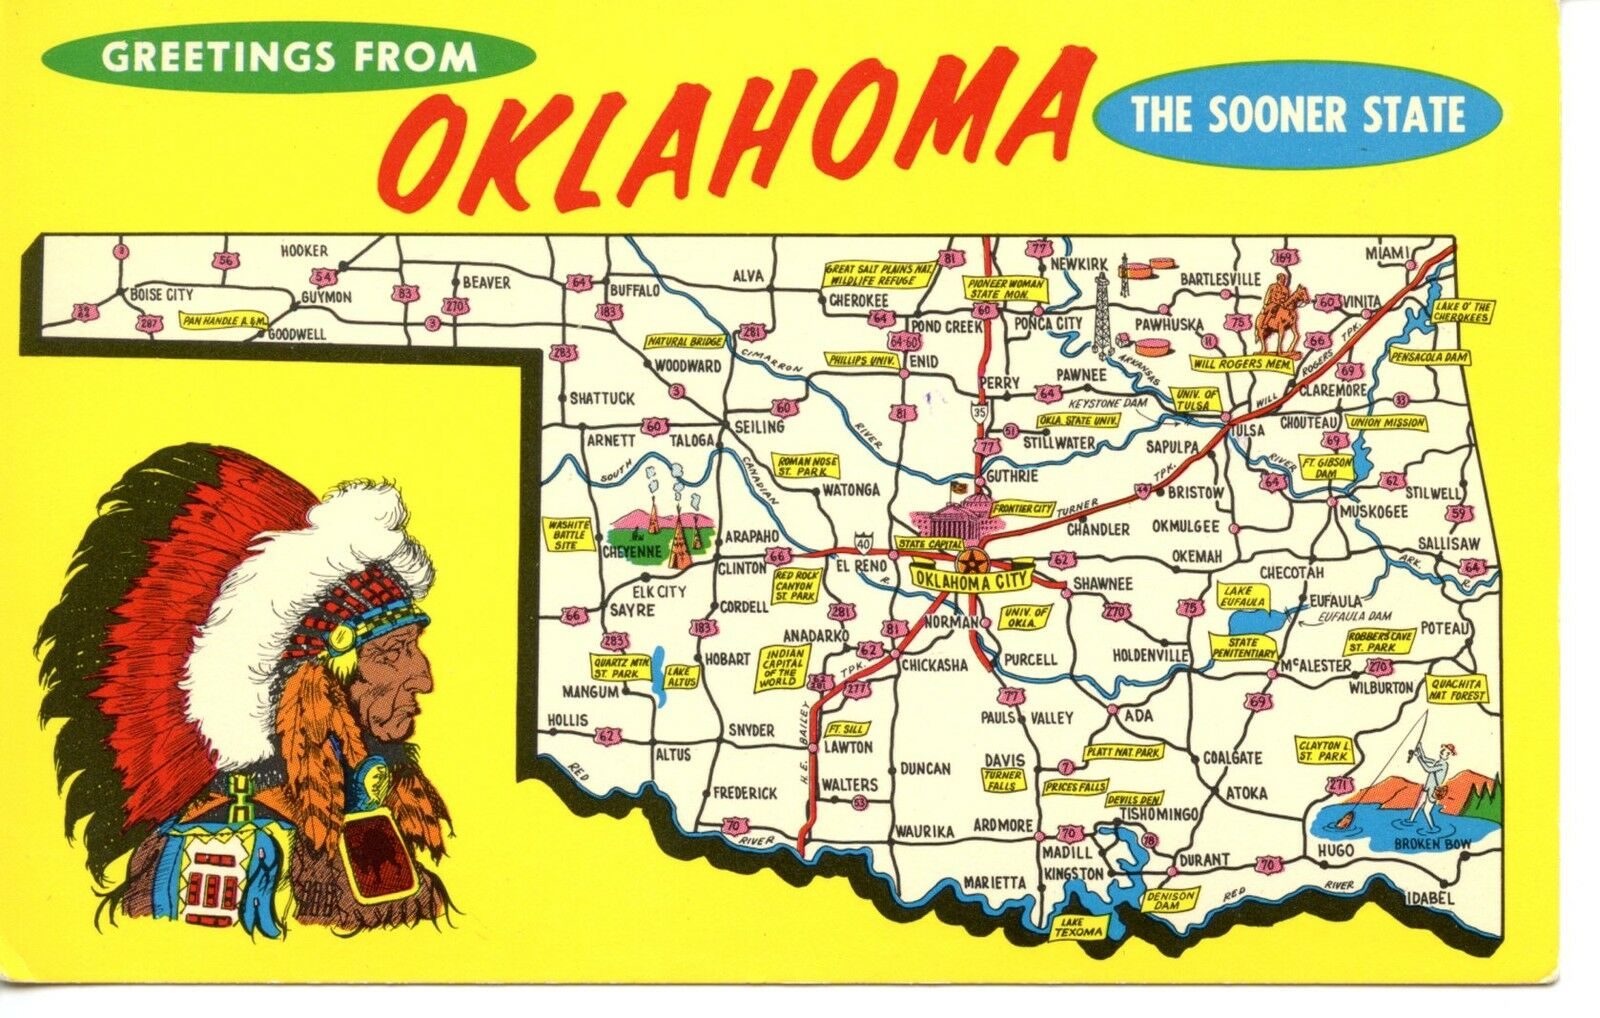 Greetings From Oklahoma Sooner State Map Cities Tourist Sites